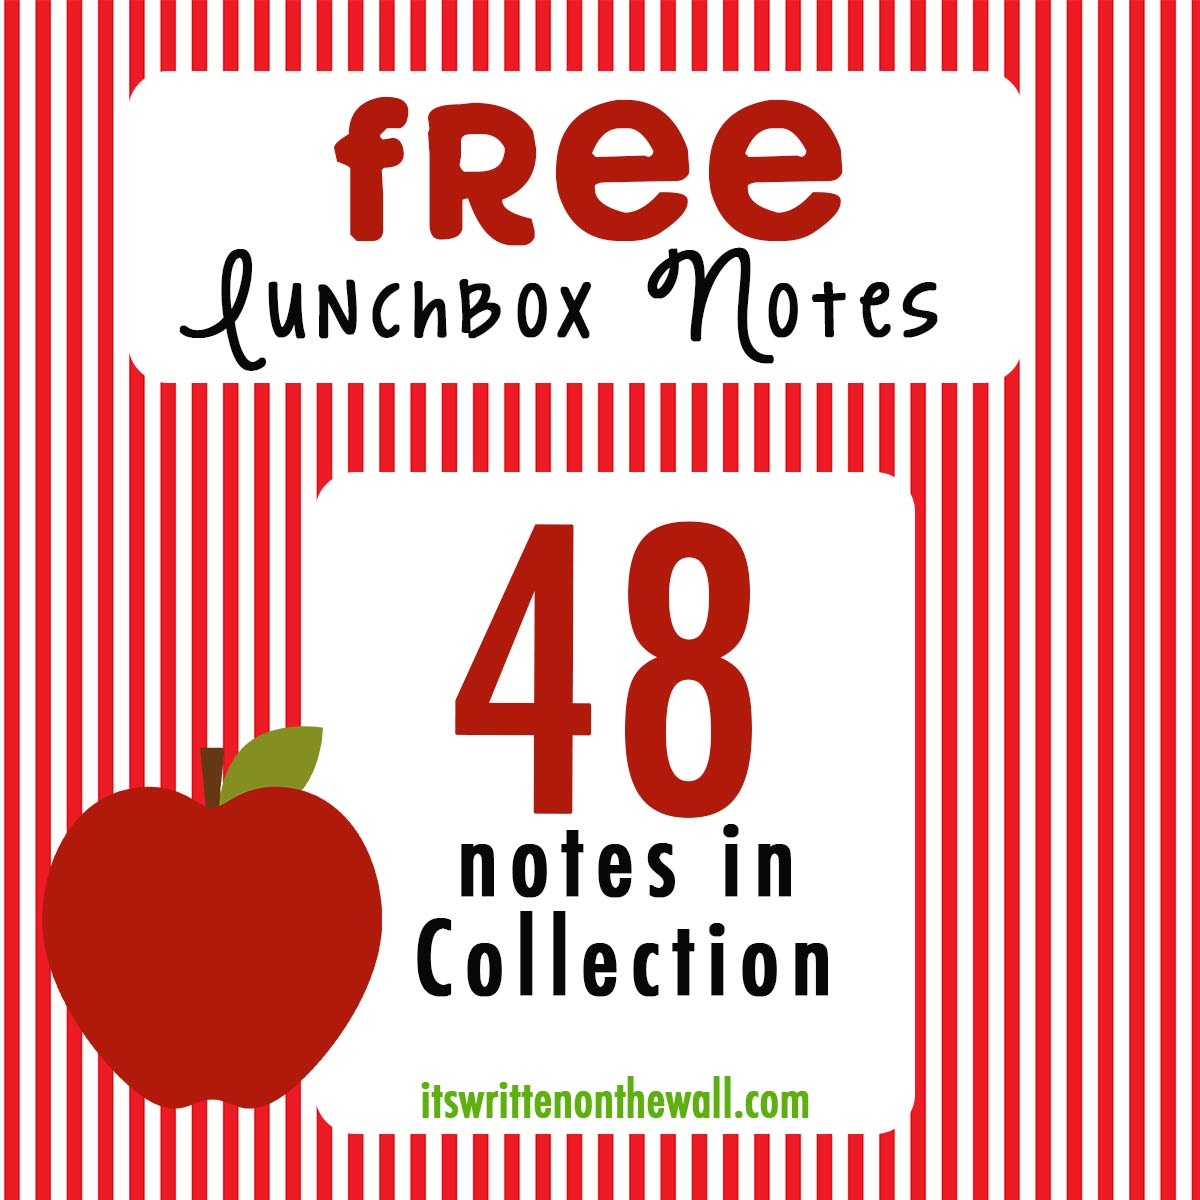 FREE Lunchbox Notes!